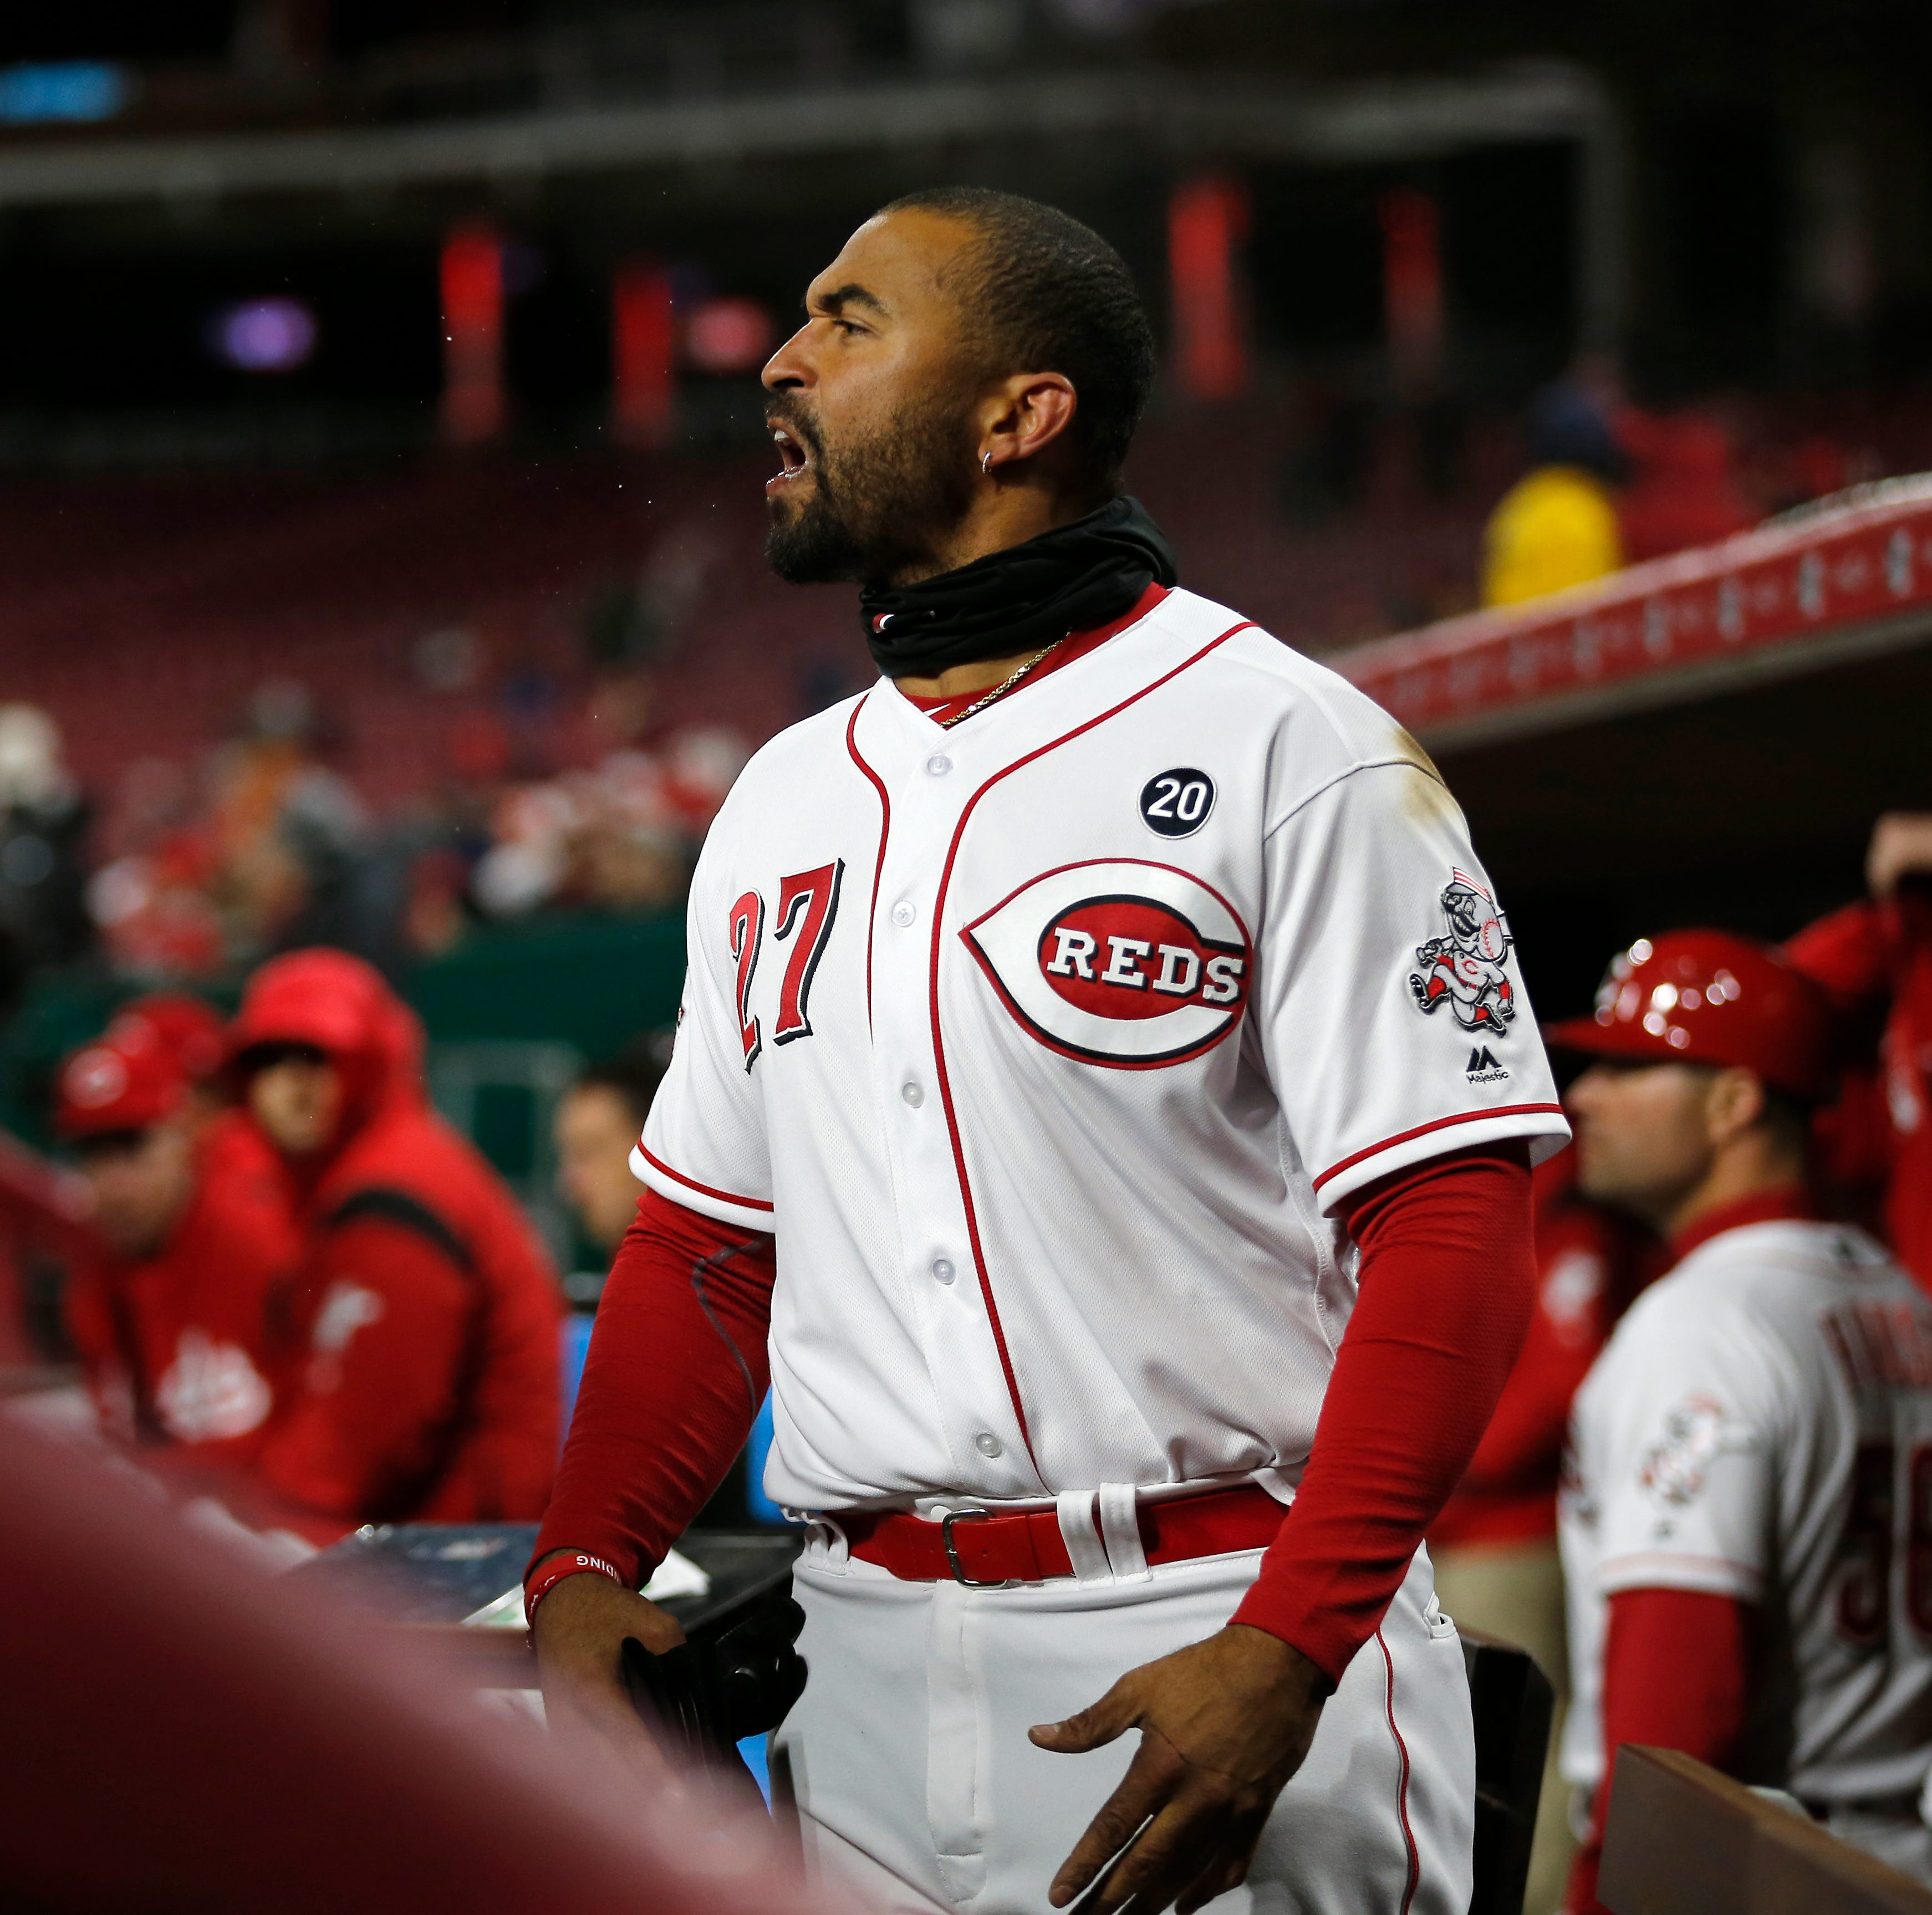 Bryce Harper ejection still leaves Reds' Matt Kemp as leader among MLB players since 2012